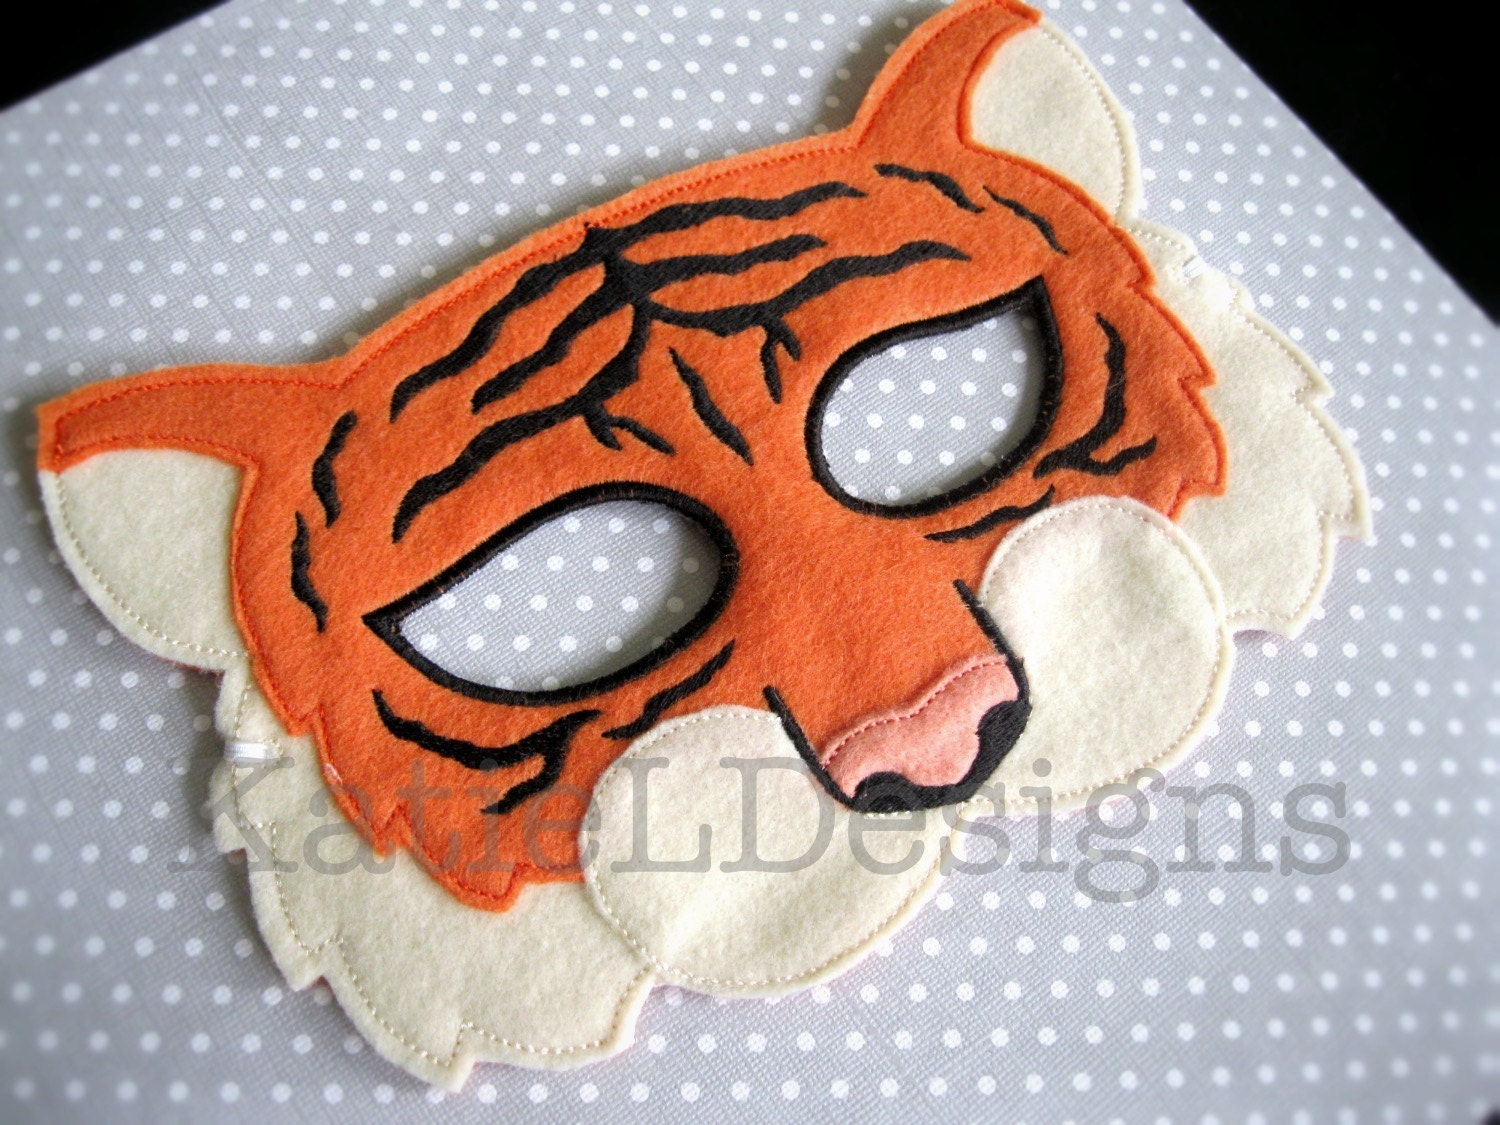 ITH Tiger Mask Machine Embroidery Design Pattern Download 5x7